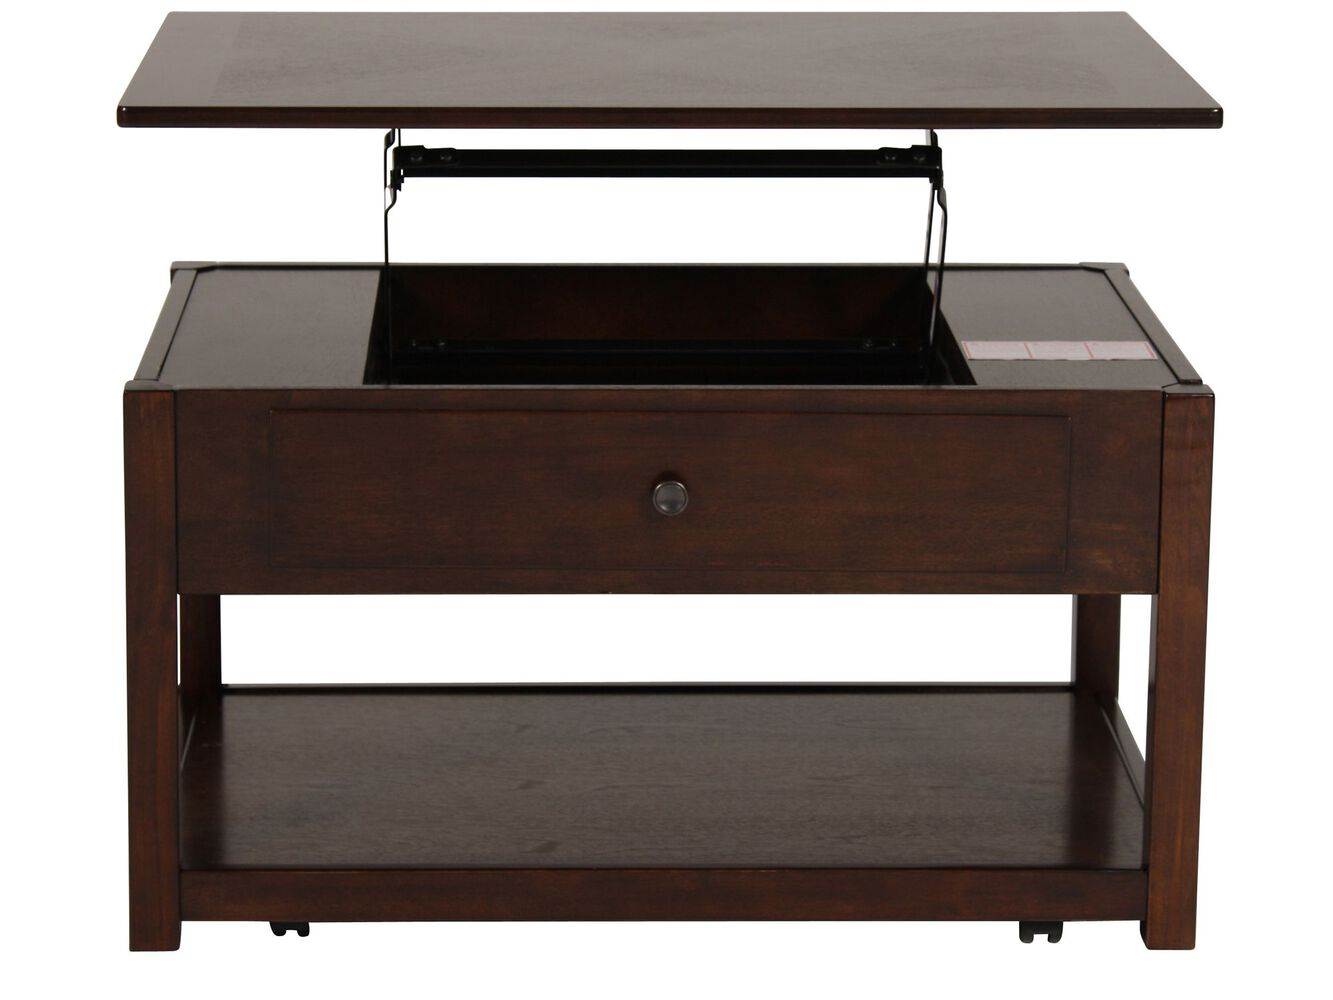 Lift top cocktail table ashley furniture - Ashley Marion Lift Top Cocktail Table